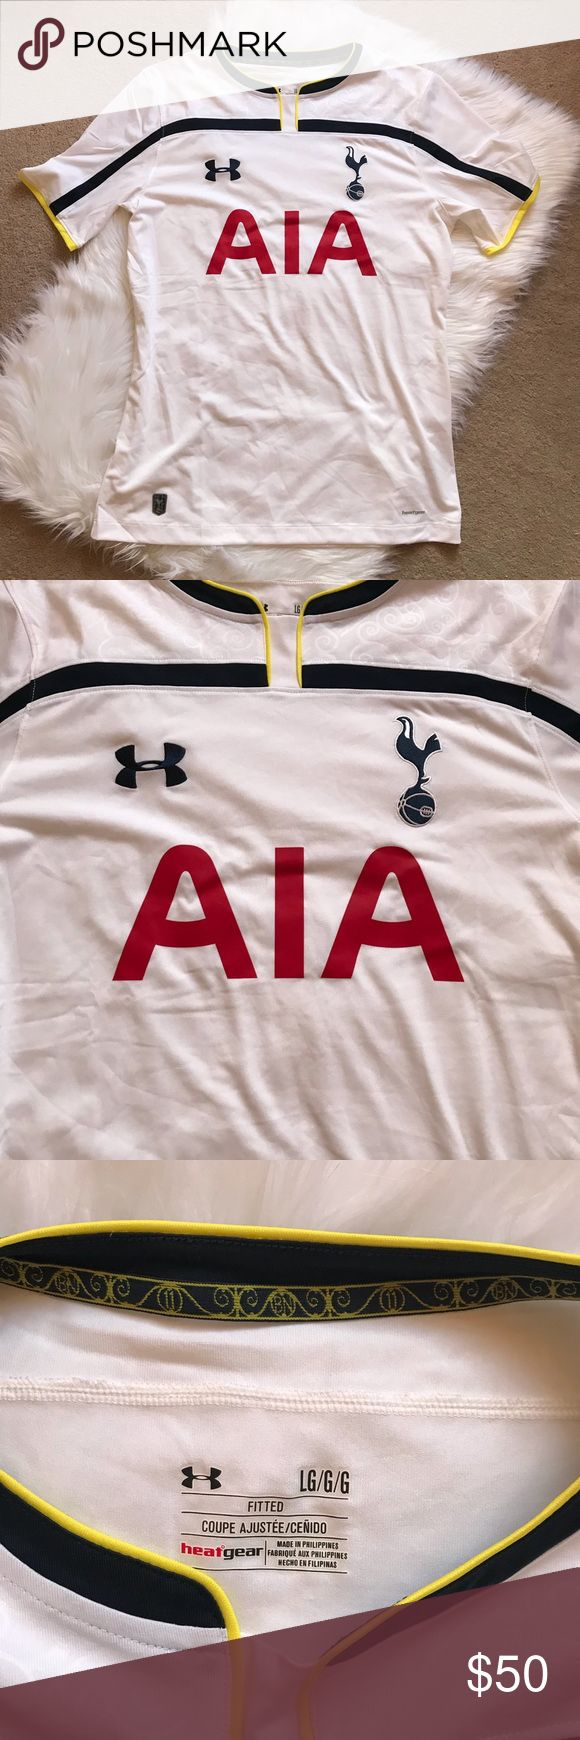 Under Armour Men's Tottenham Hotspur Jersey Under Armour Tottenham Hotspur Home 2014-2015 Replica Soccer Jersey.  UA Heat Gear Technology to stay cool, dry and comfortable.  Size large men's.  White.  Worn 1x.  Machine washed cold and hung dry.  No rips, stains or tears. Under Armour Shirts Tees - Short Sleeve